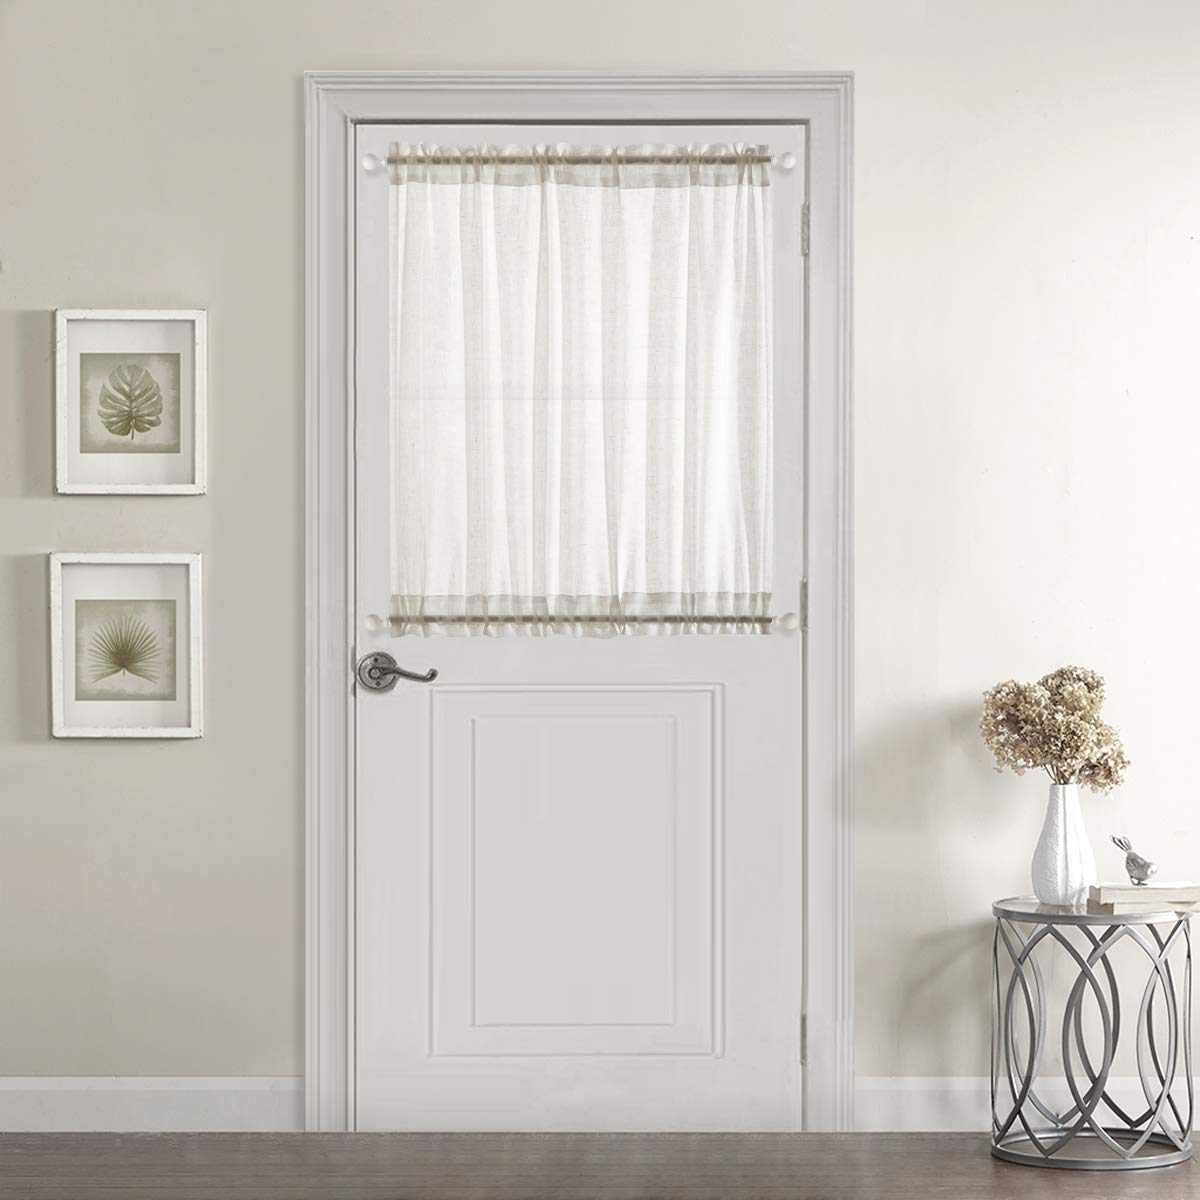 Dreaming Casa Sheer French Door Curtains Linen Textured One Panel Rod Pocket 40 inches Long Curtains 1 Panel, White,52